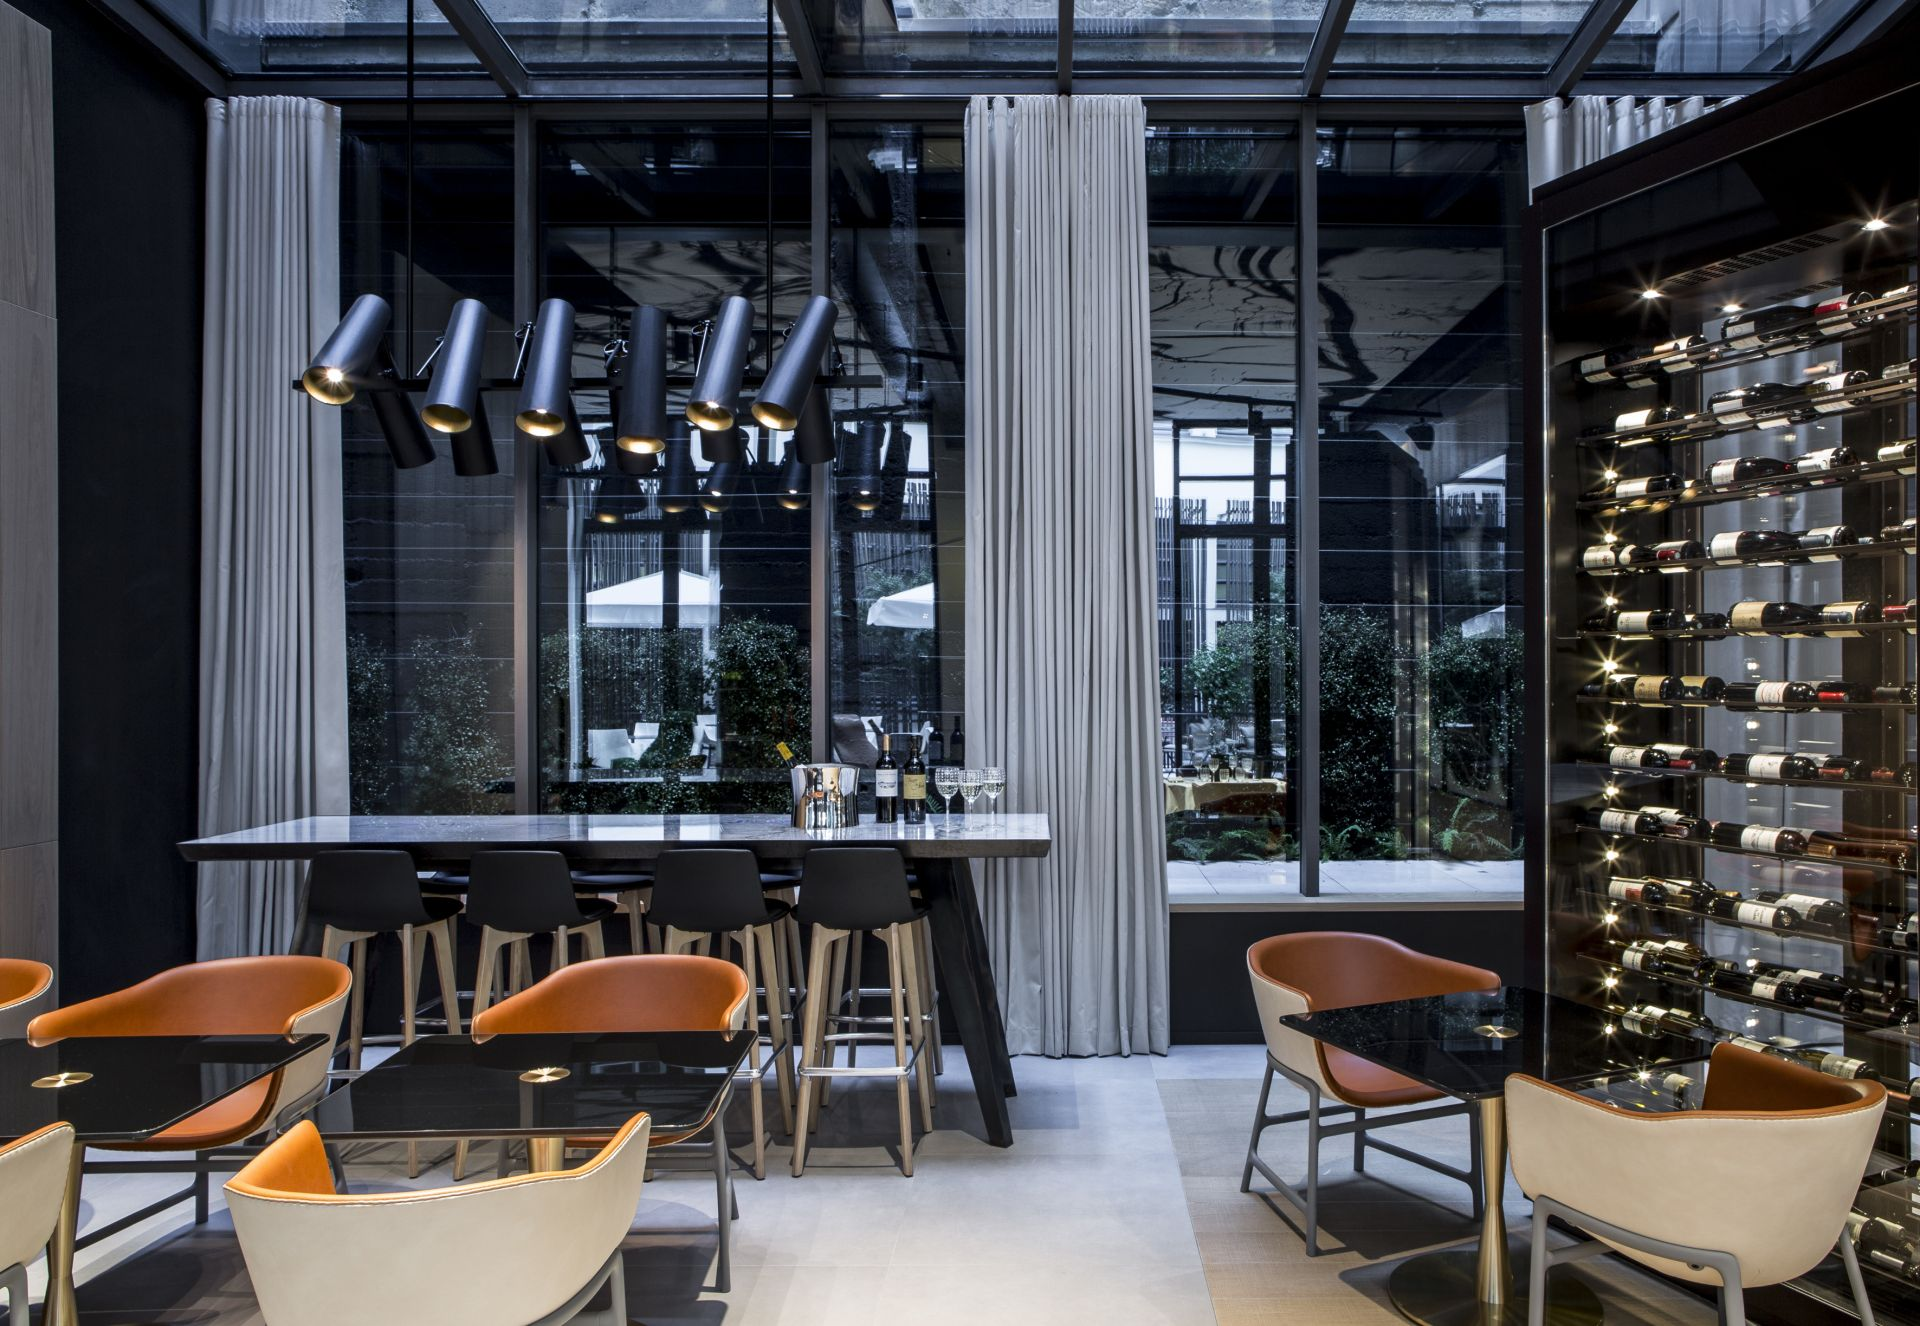 Le cinq codet the union of art and luxury for Design hotel paris 11